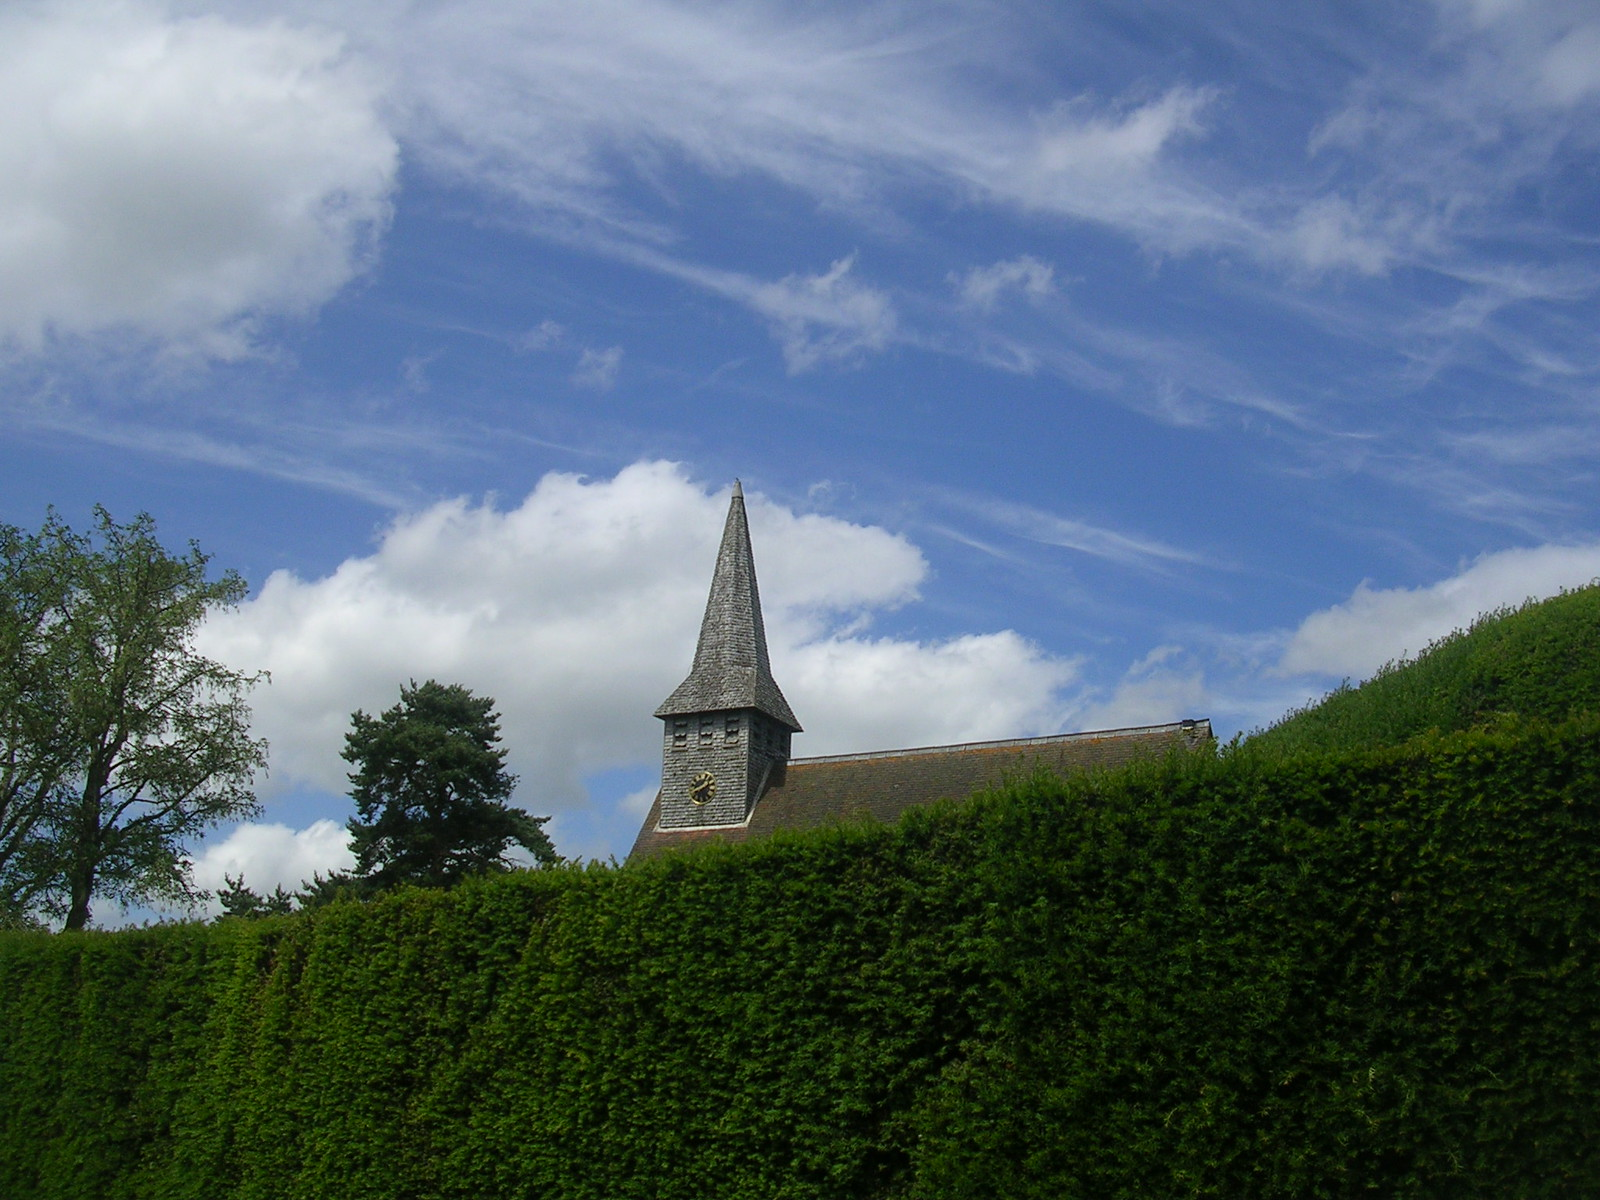 Klu Klux Church A sinister hoodie peers over the hedge. Hascombe. Milford to Godalming